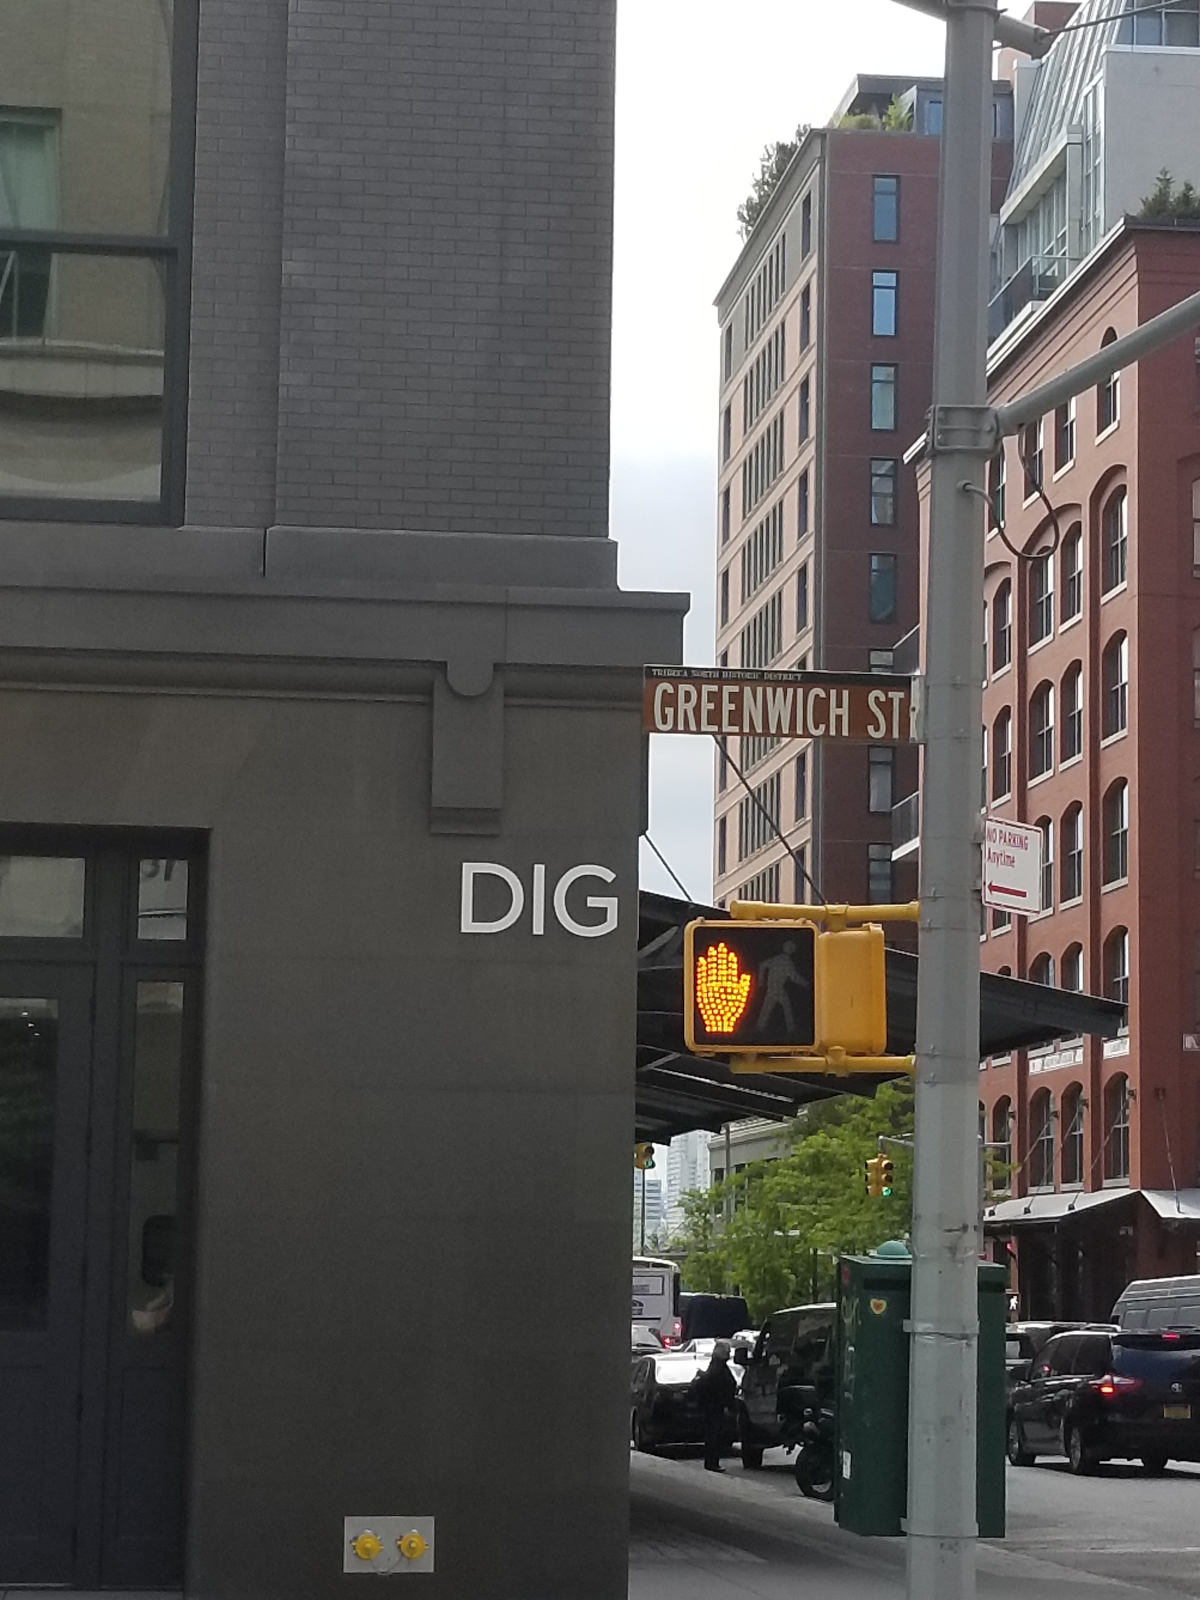 'dig' on greenwich street